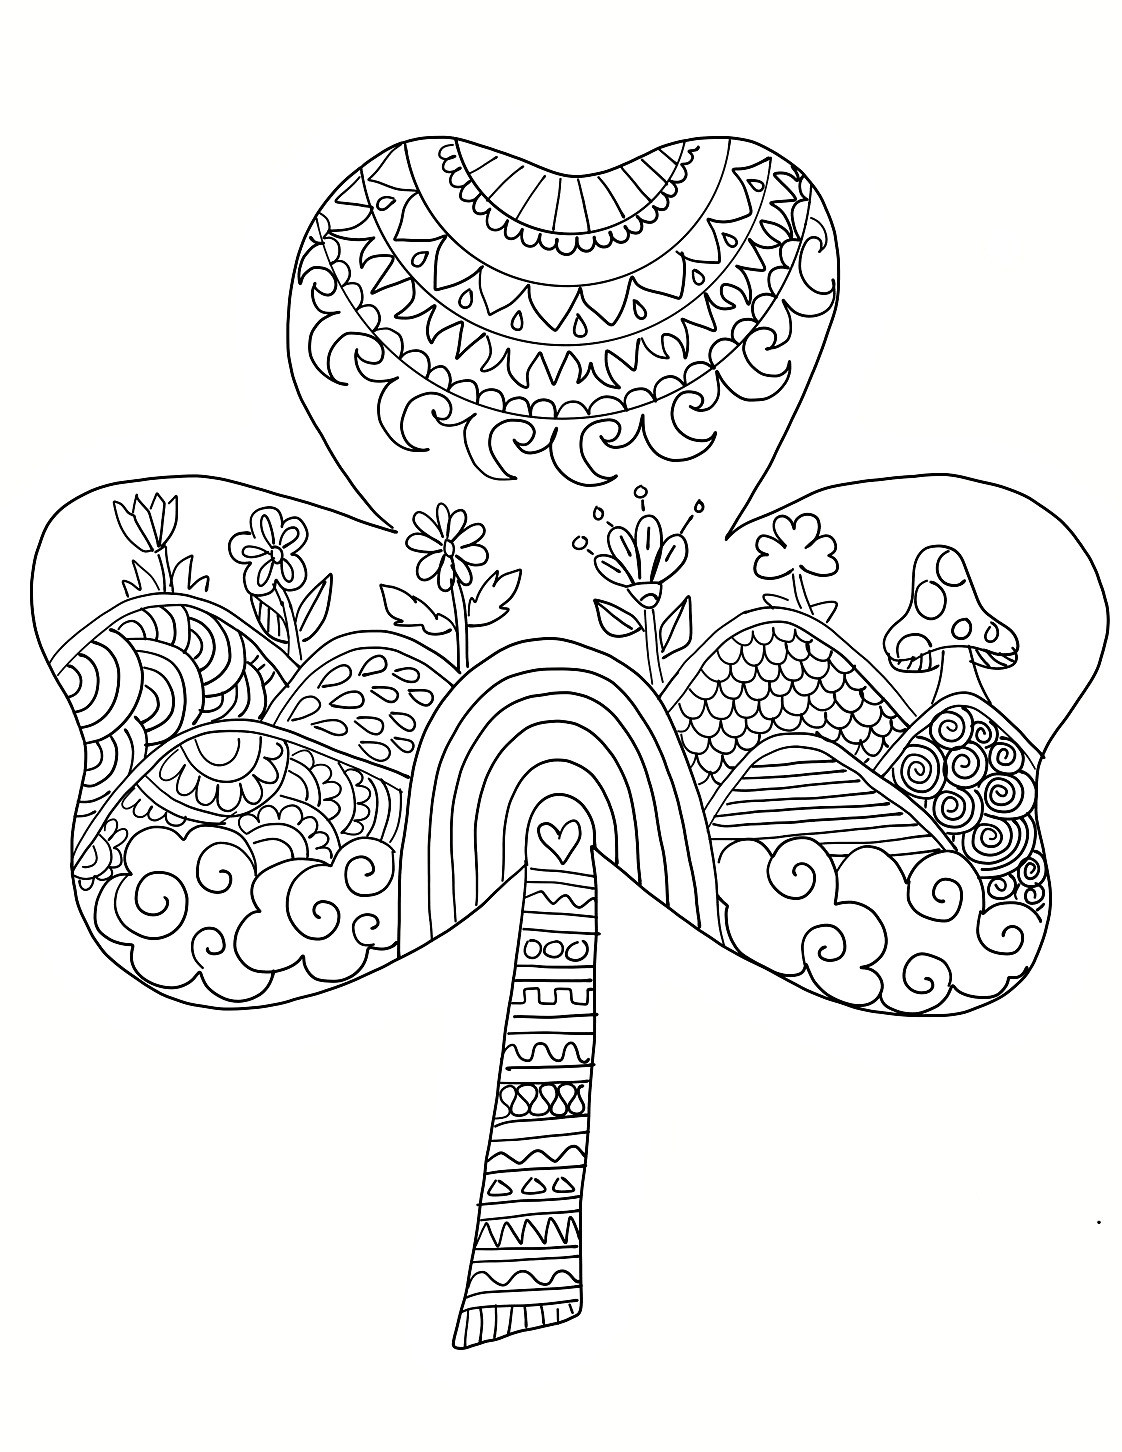 St Patrick'S Day Coloring Sheet  Cool Shamrock Mandala Coloring Page Coloring Pages – Free